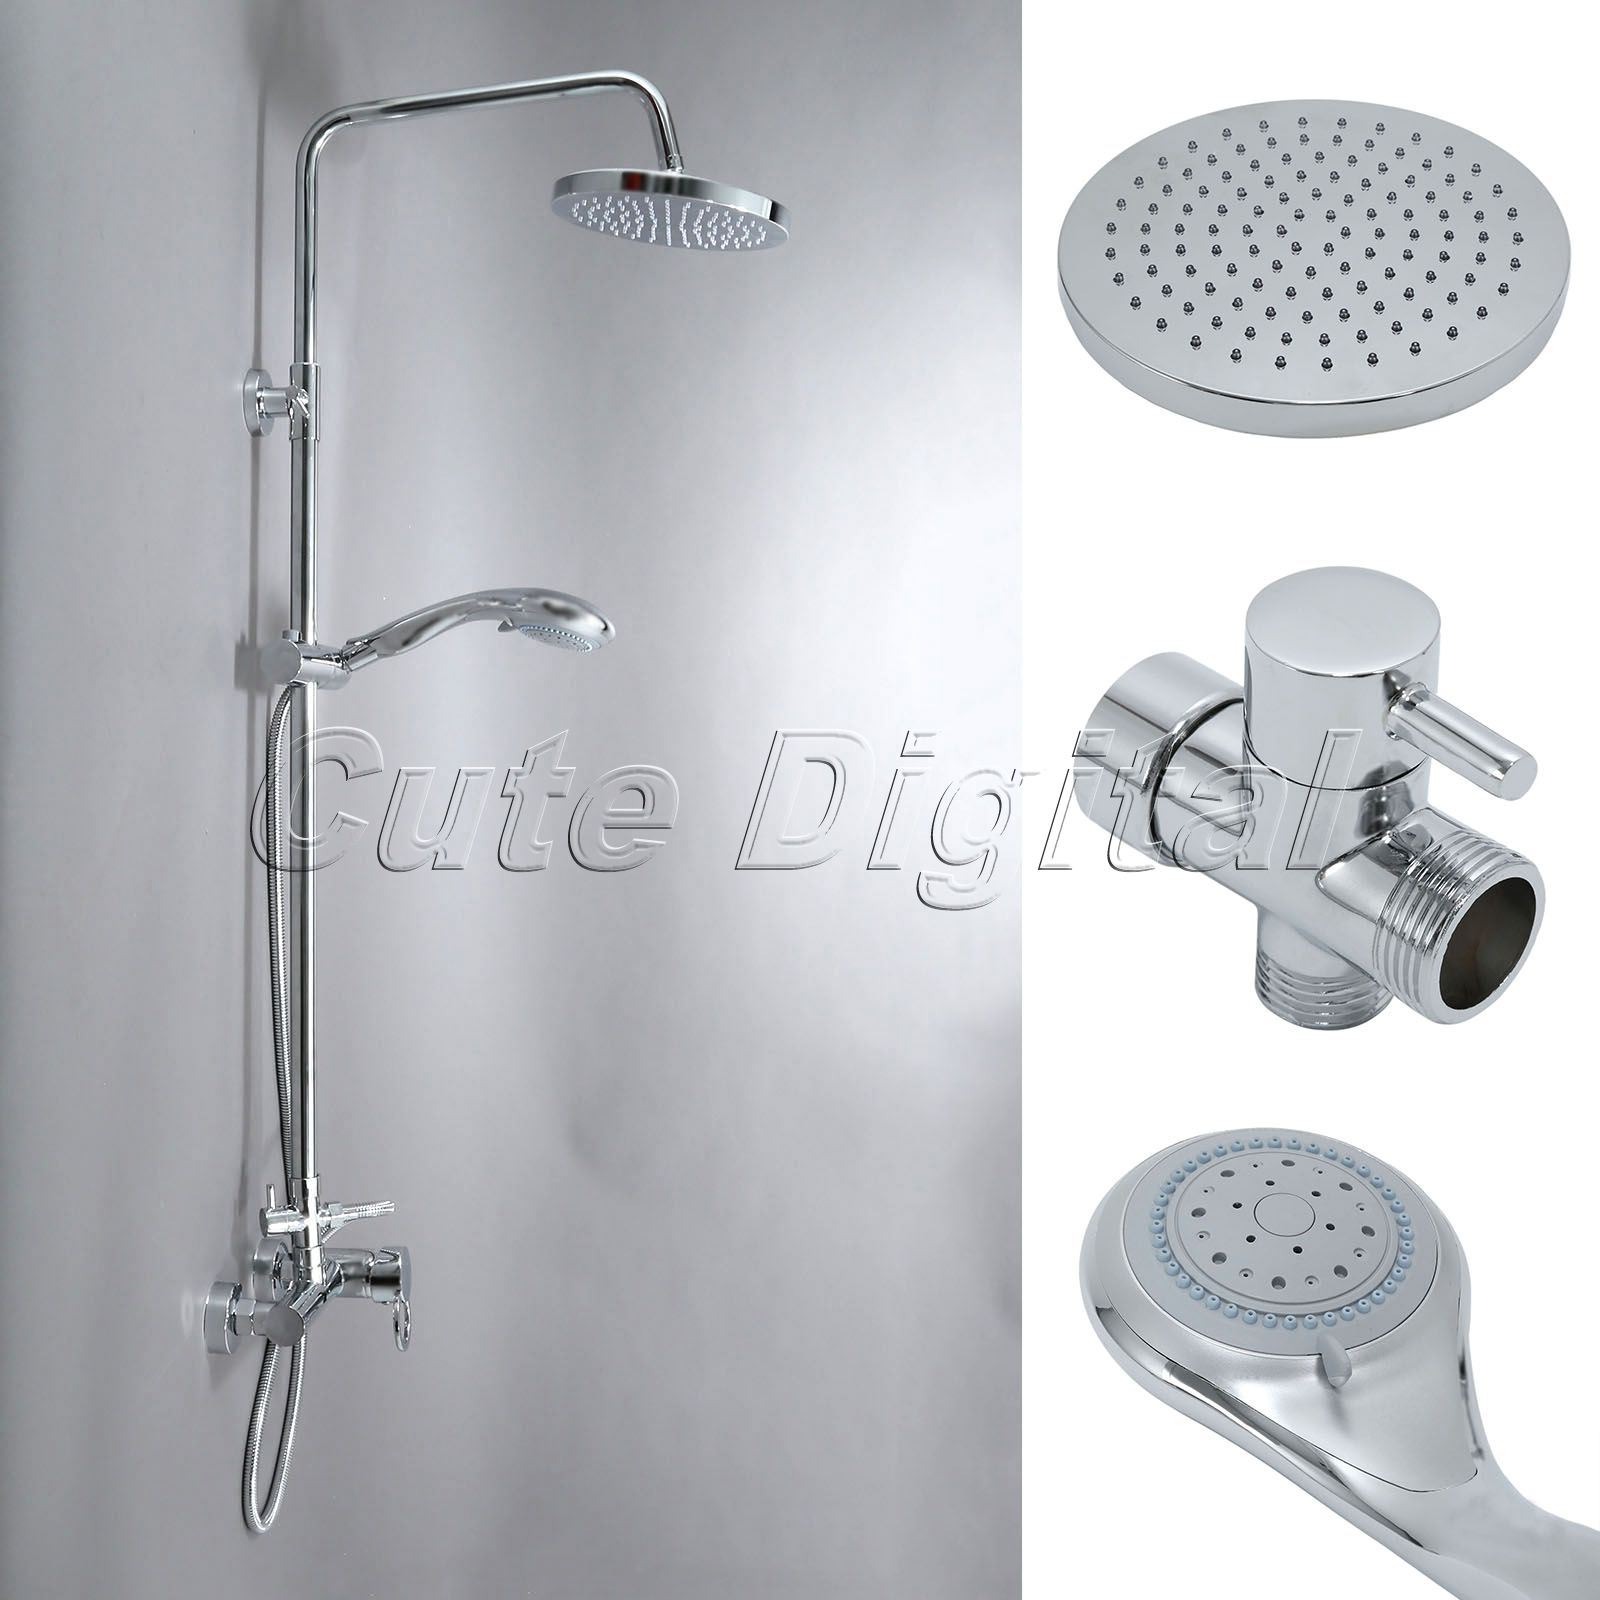 Popular Pressure ThermostatBuy Cheap Pressure Thermostat Lots - Rain shower head water pressure